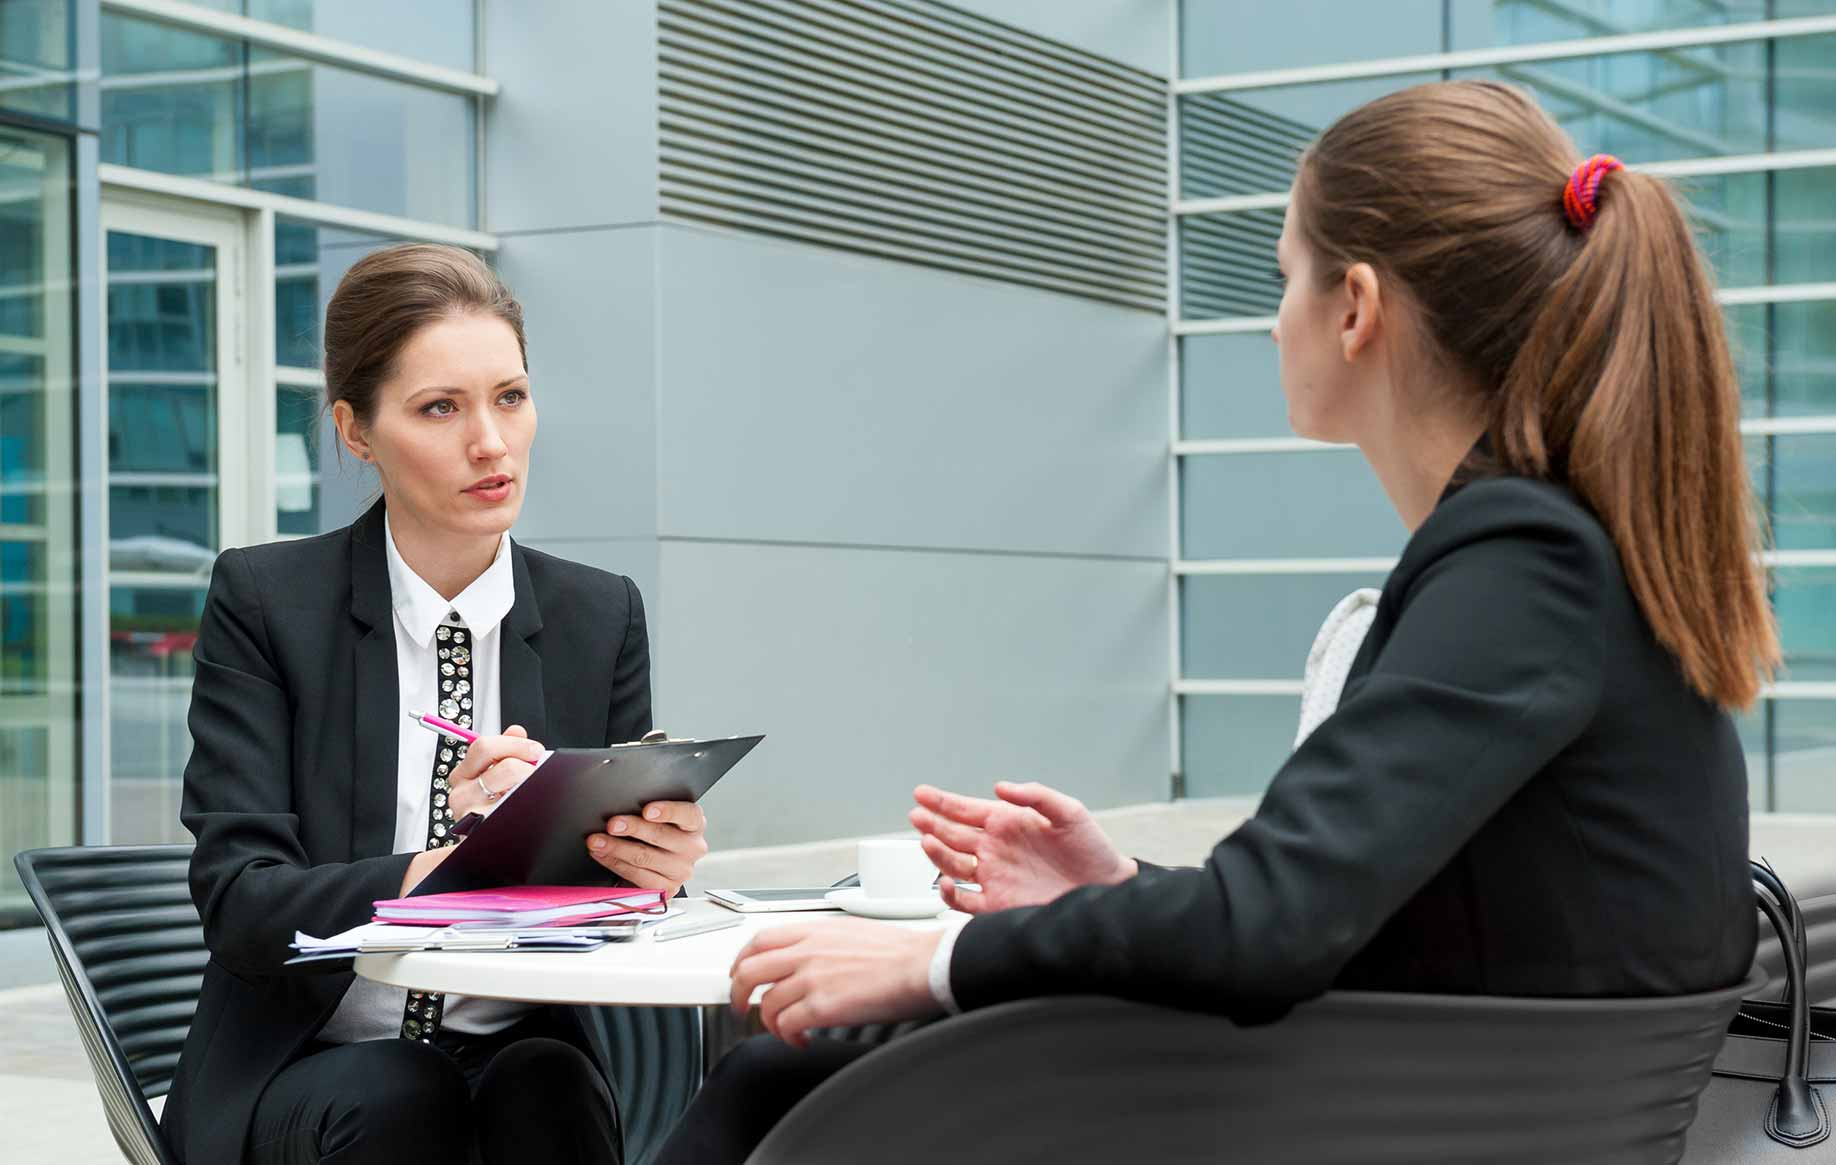 market research study candidate completing screening interview